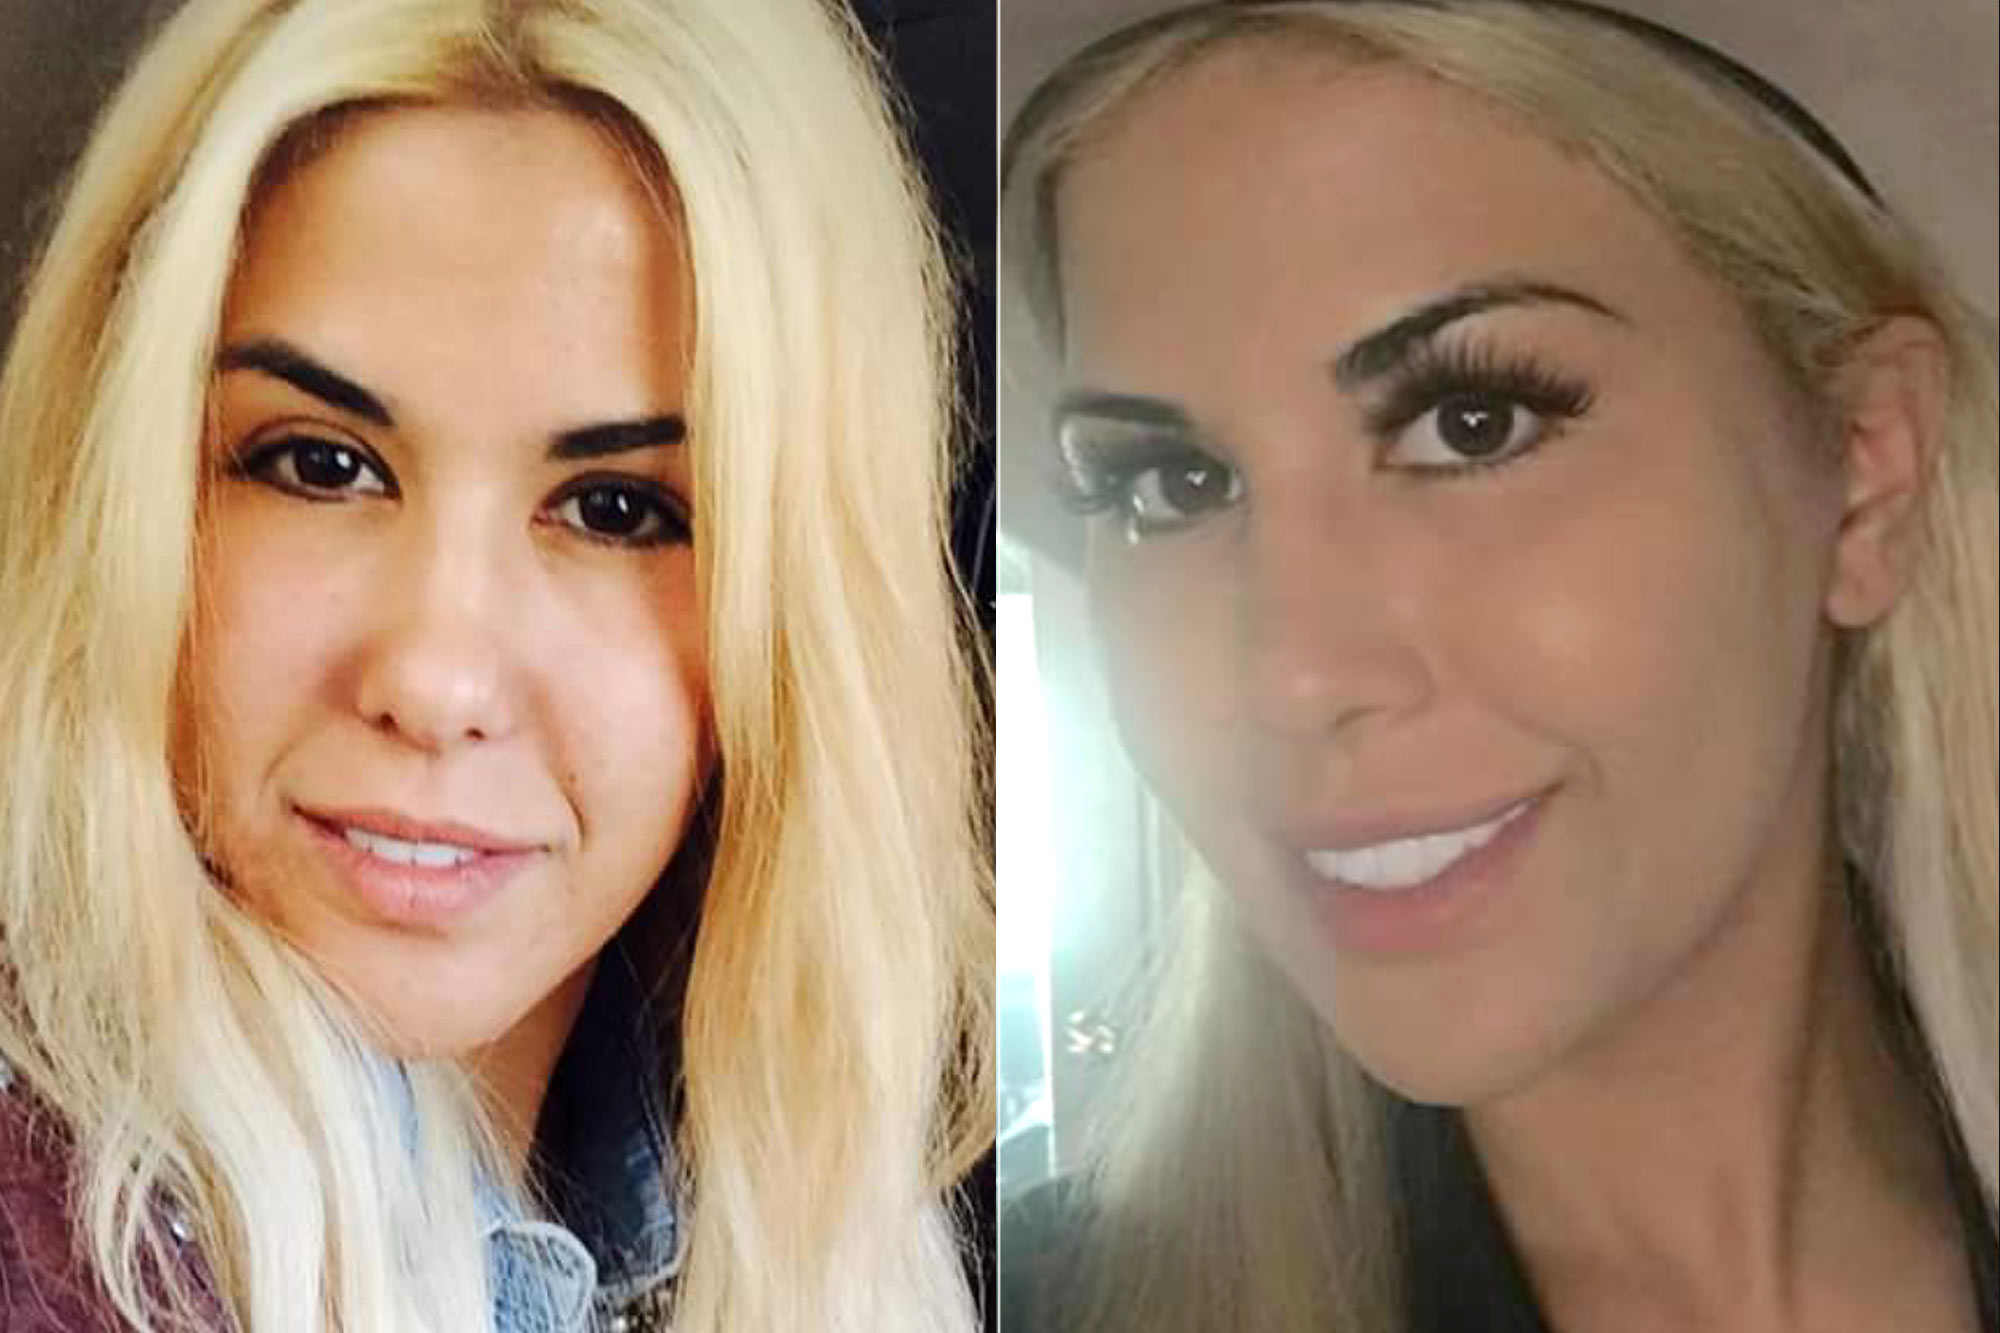 Ivanka Trump: Texas Woman Spends $60,000 on Plastic Surgery to Look Like  the Businesswoman | PEOPLE.com